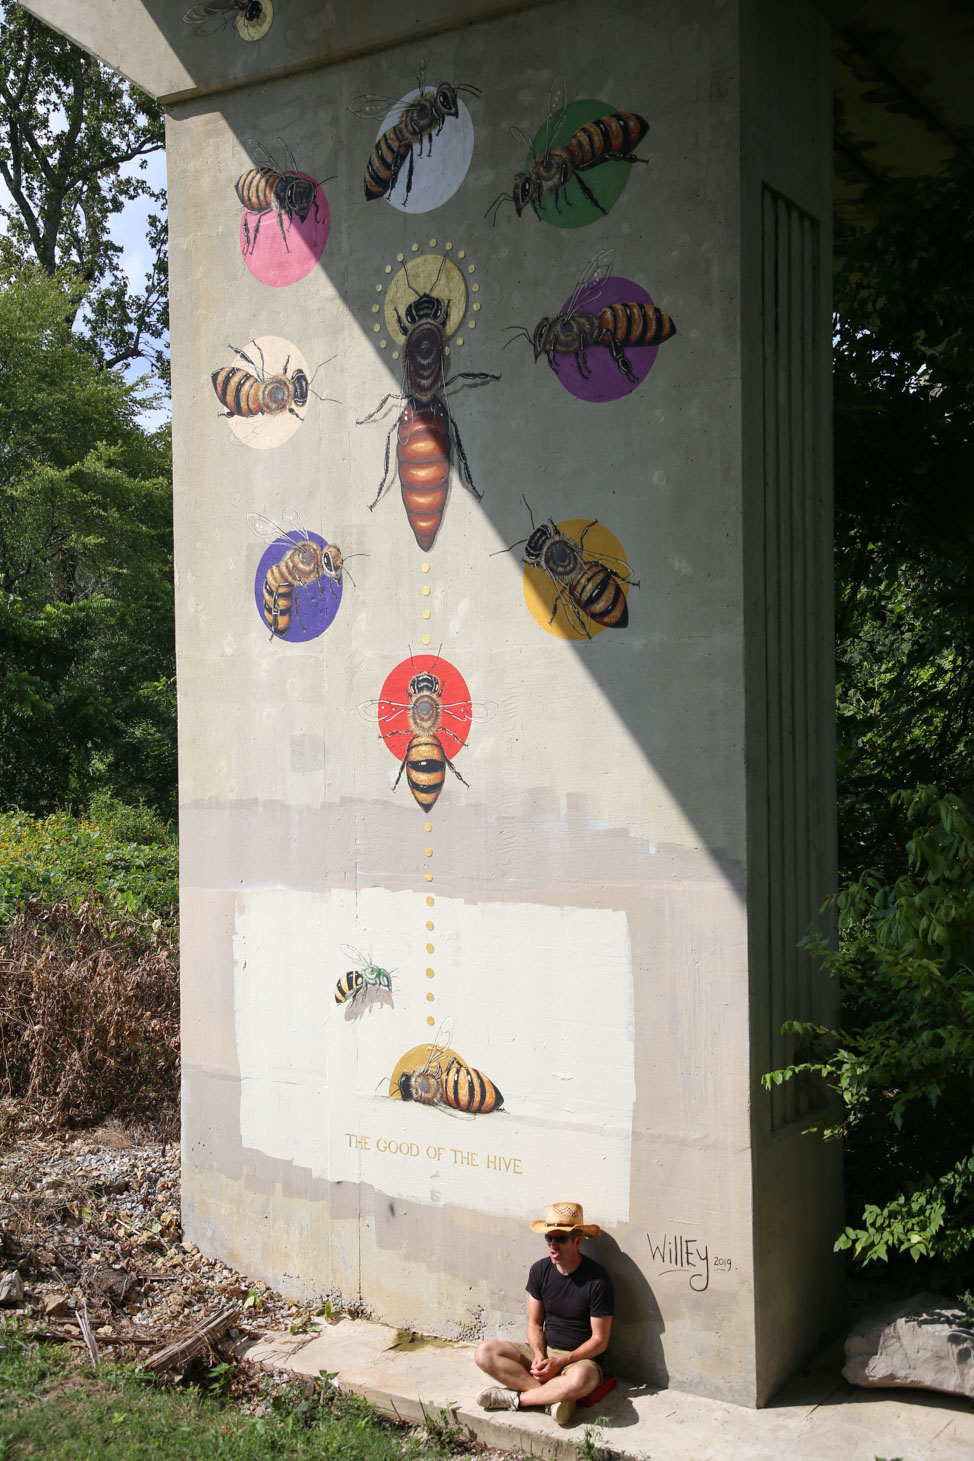 The Good of the Hive mural in Manchester, Tennessee